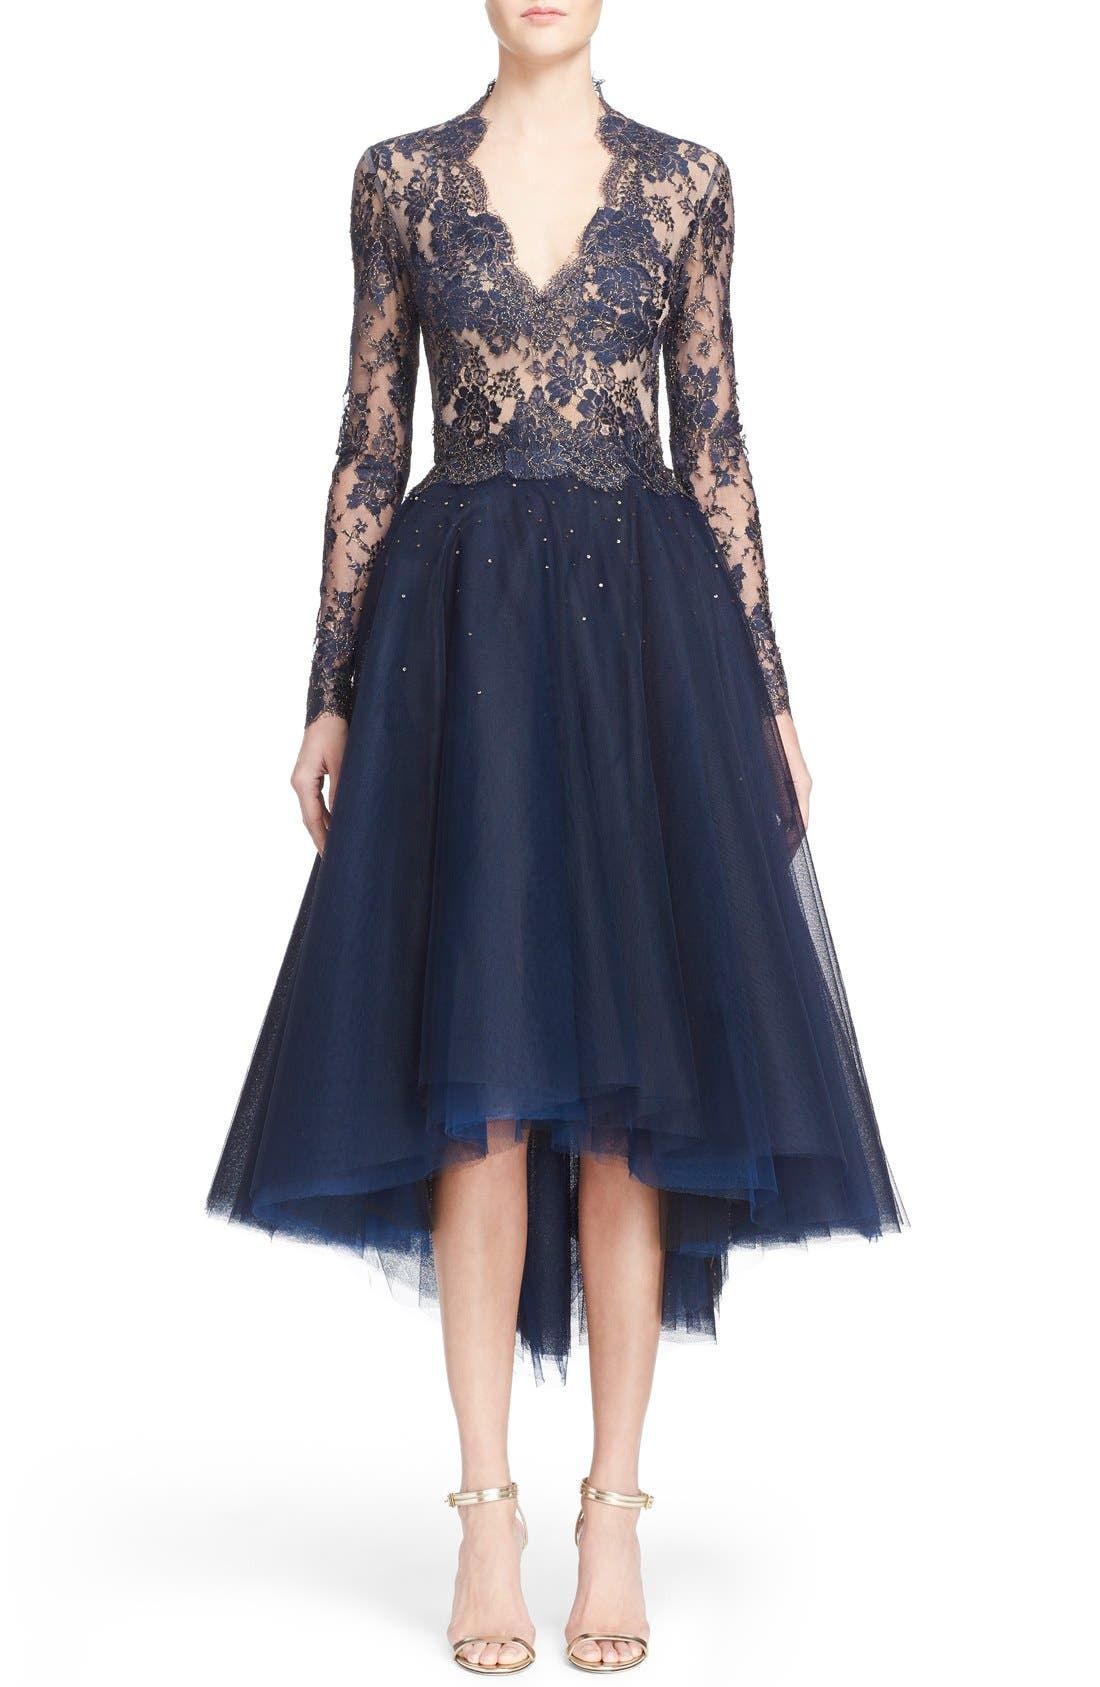 Reem Acra Chantilly Lace & Embellished Tulle High/Low Dress